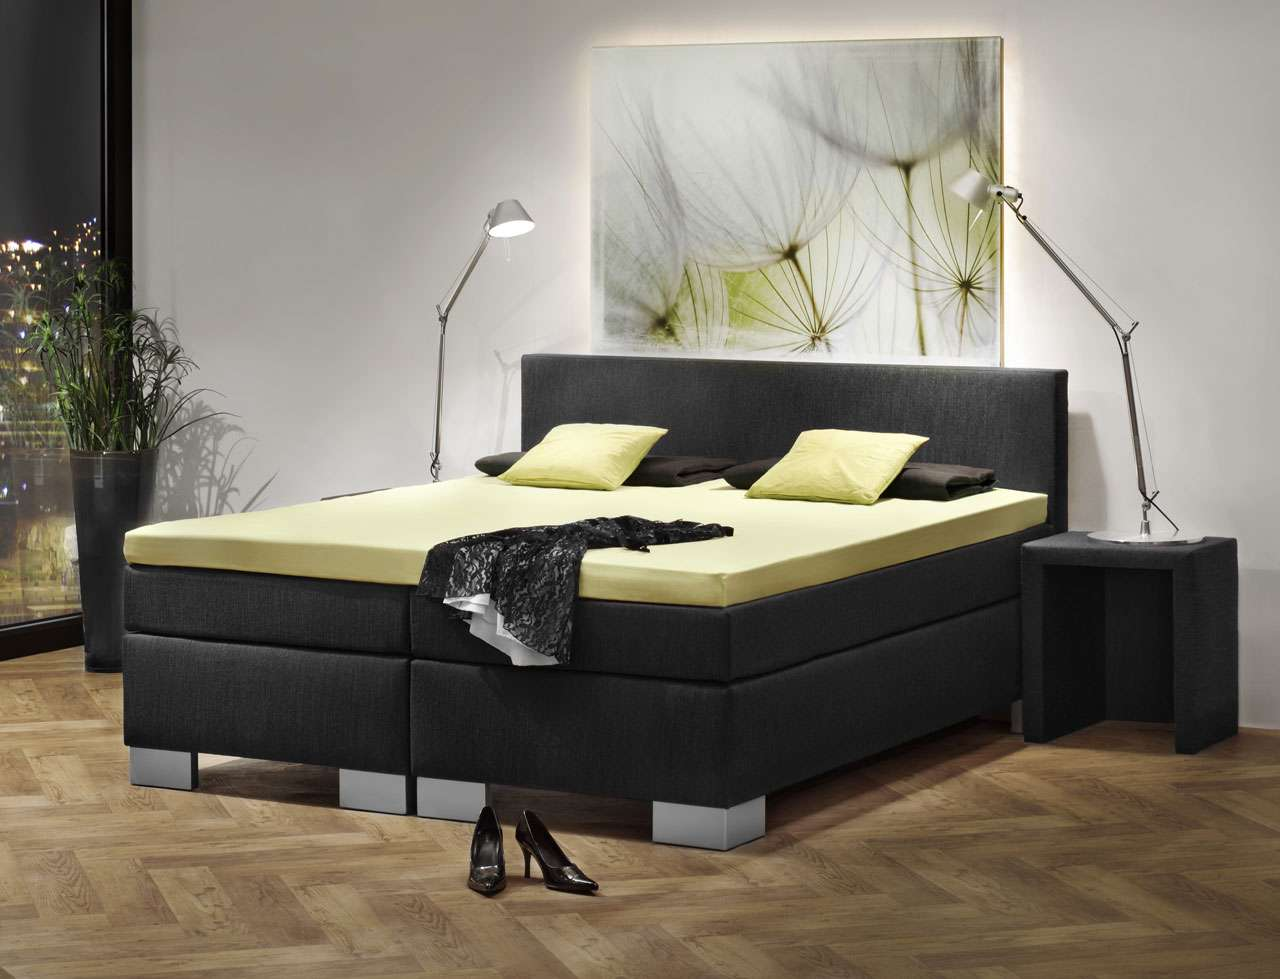 lattenroste 200 x 220 bettw sche englisch tapeten schlafzimmer hammer wiemann kleiderschr nke. Black Bedroom Furniture Sets. Home Design Ideas